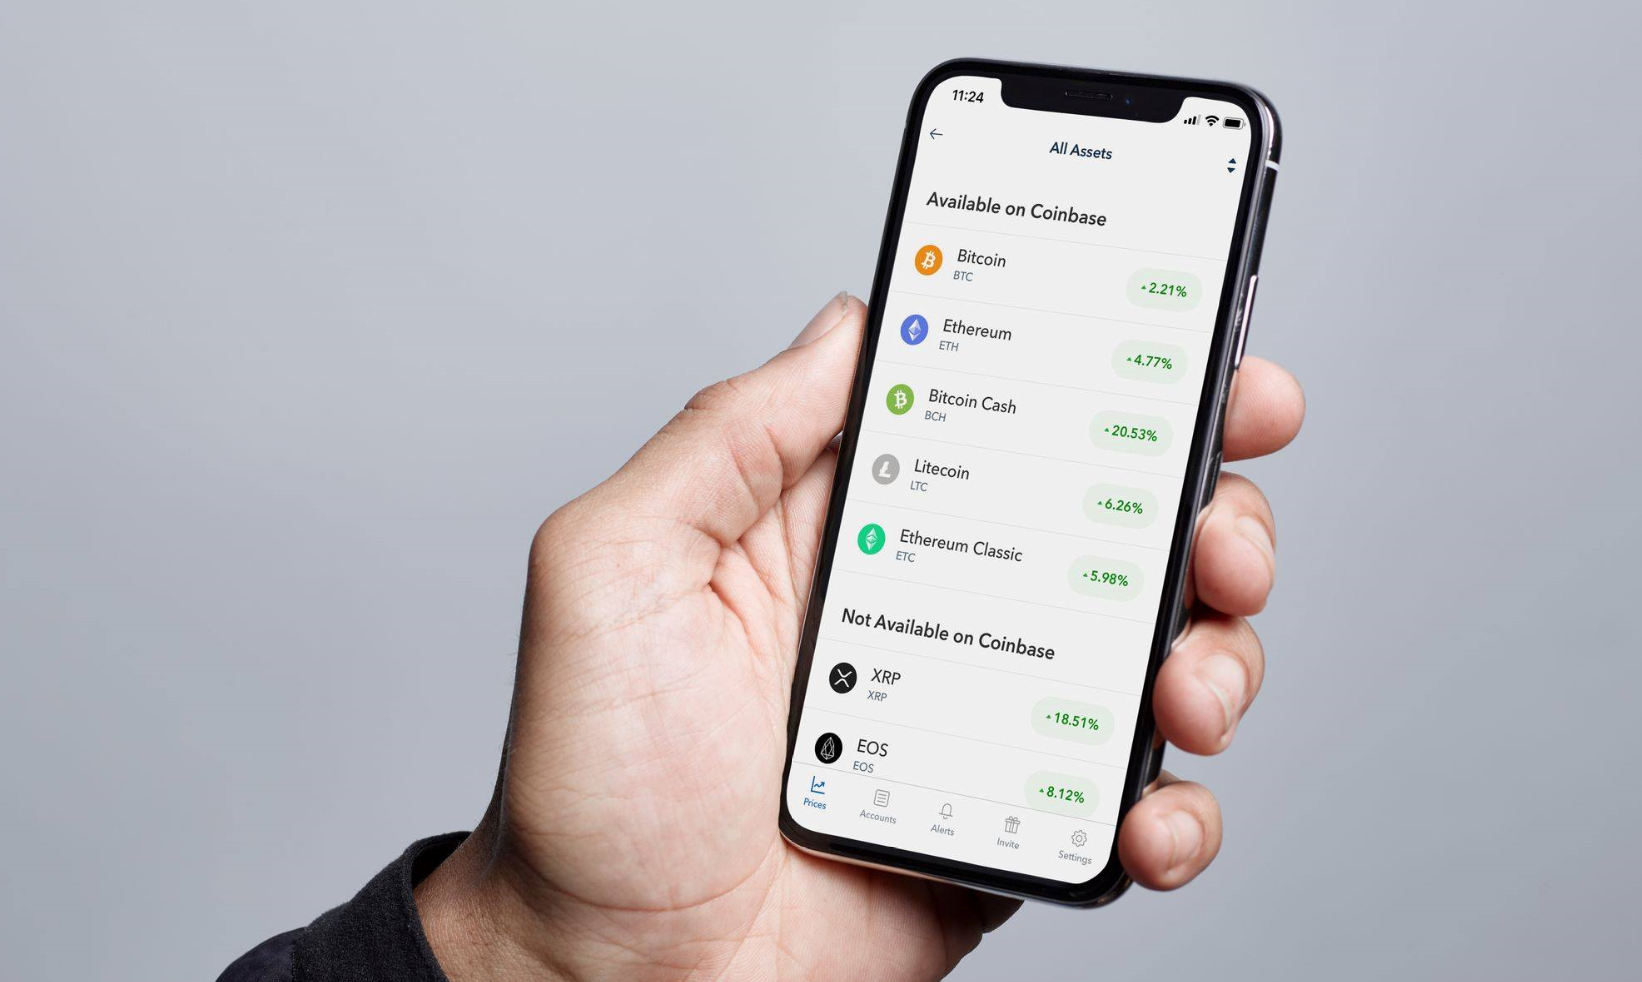 Altcoins on the Coinbase app